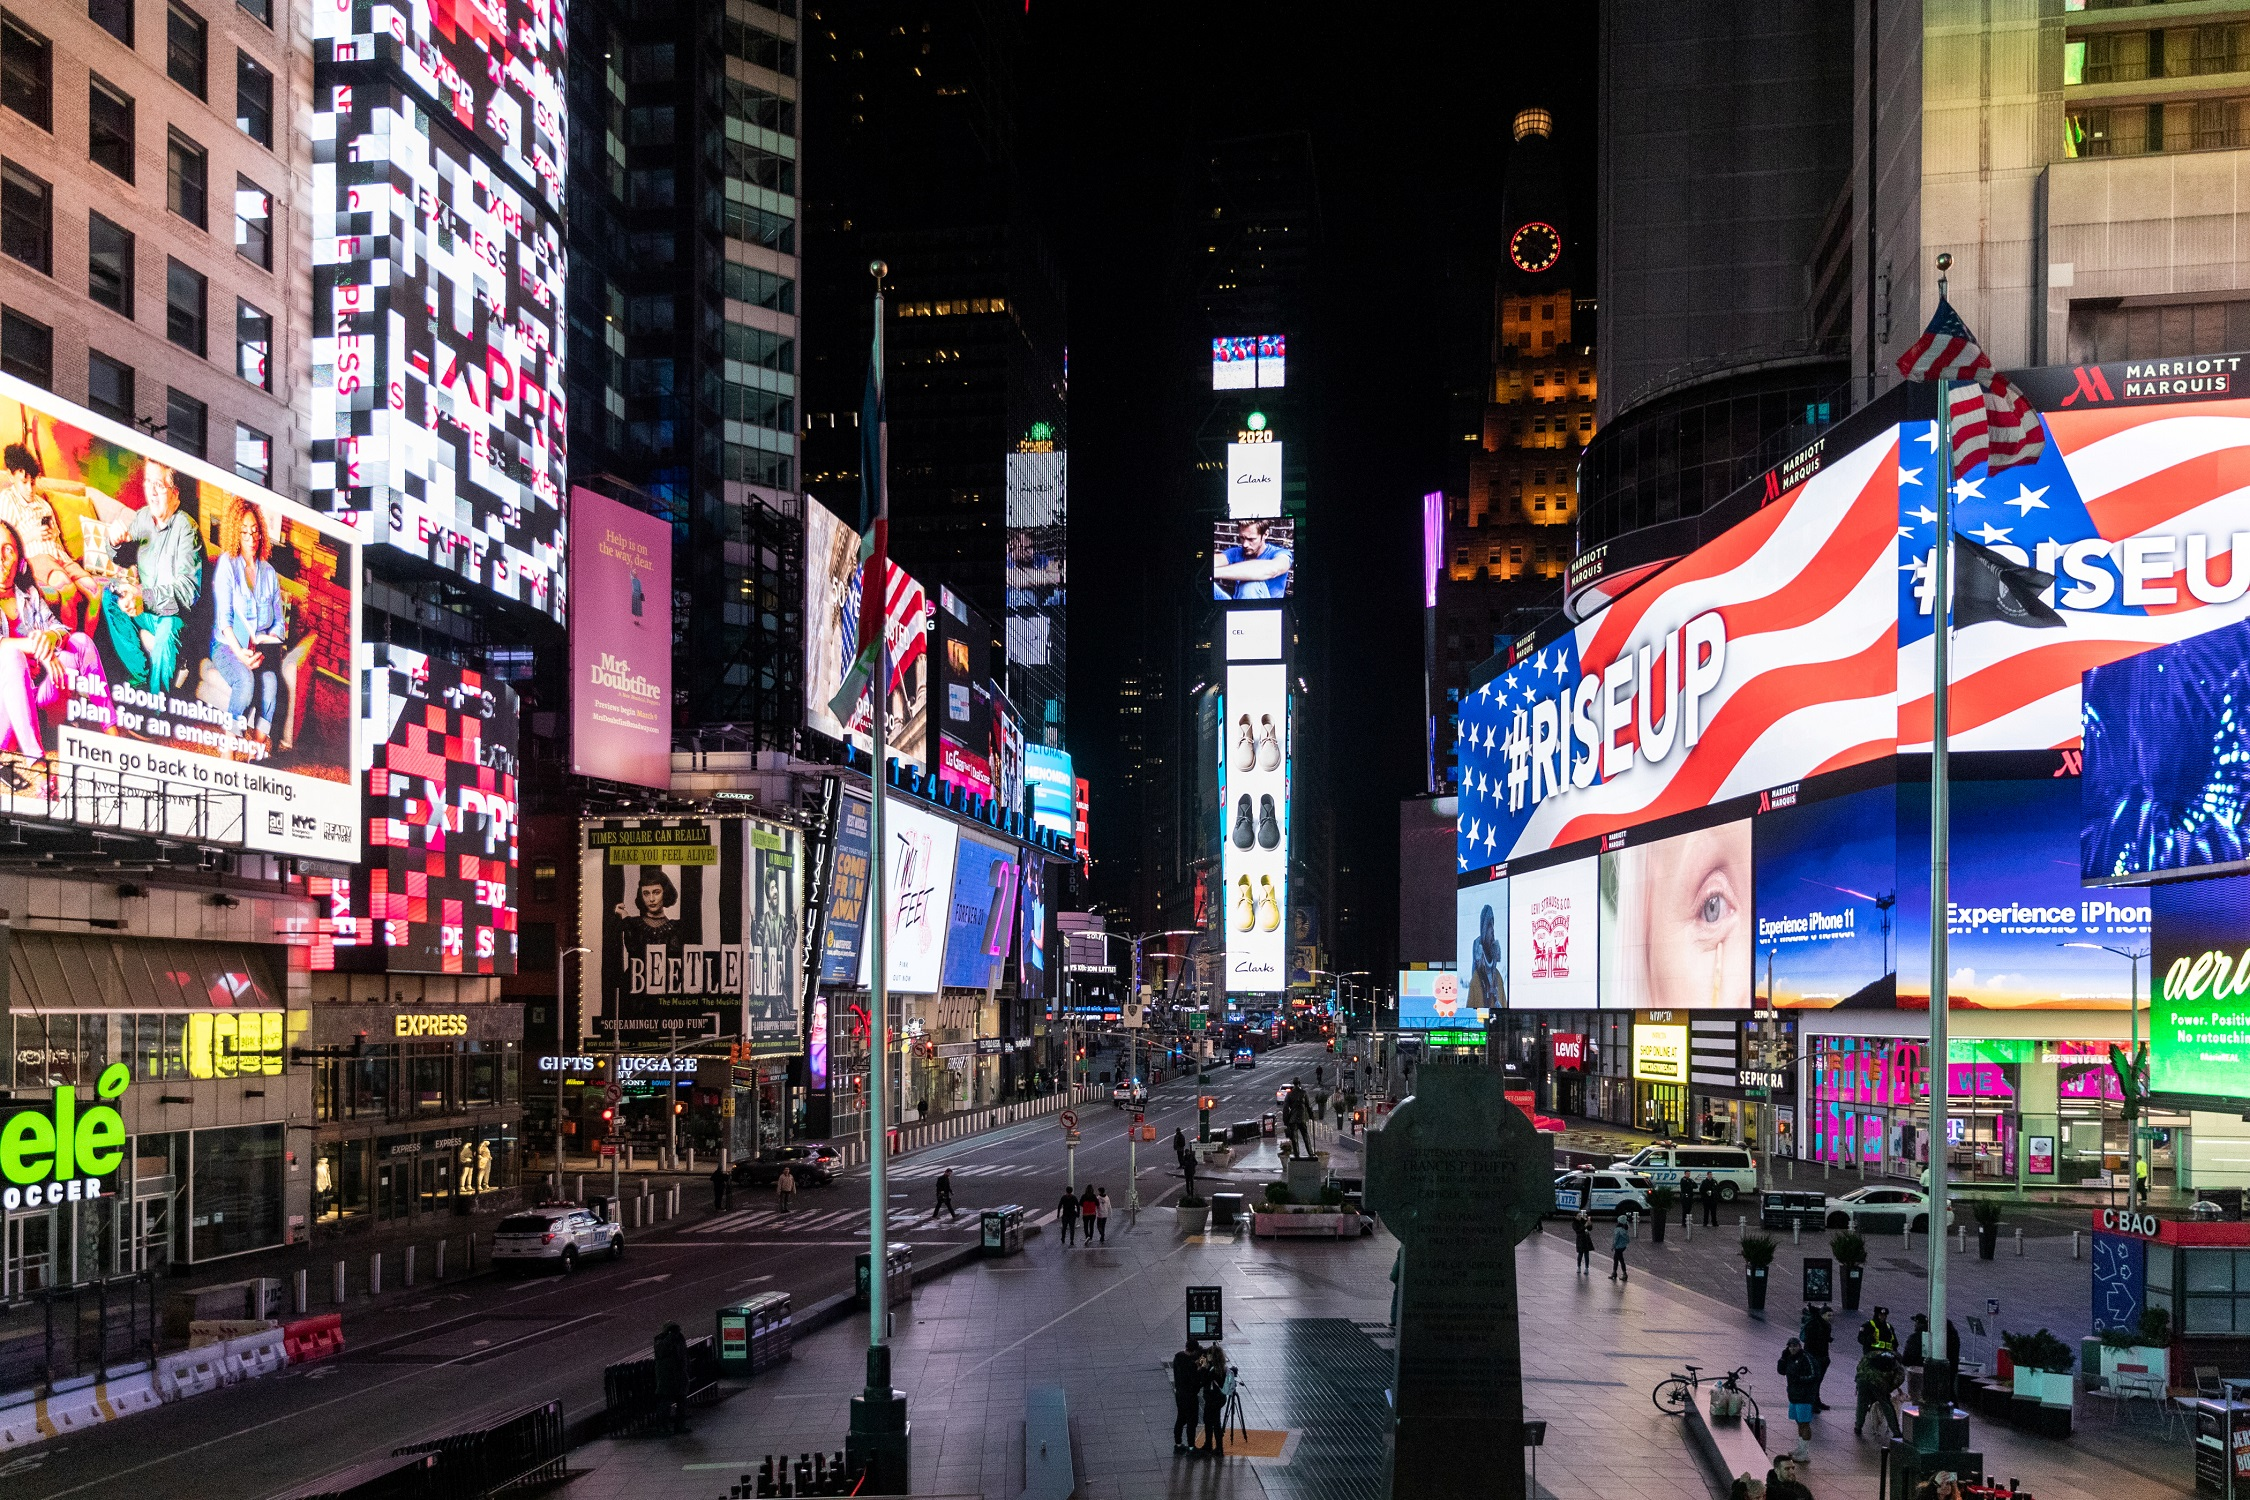 An empty Times Square is seen following the outbreak of the coronavirus disease (COVID-19), in New York City, U.S., March 18, 2020. REUTERS/Jeenah Moon